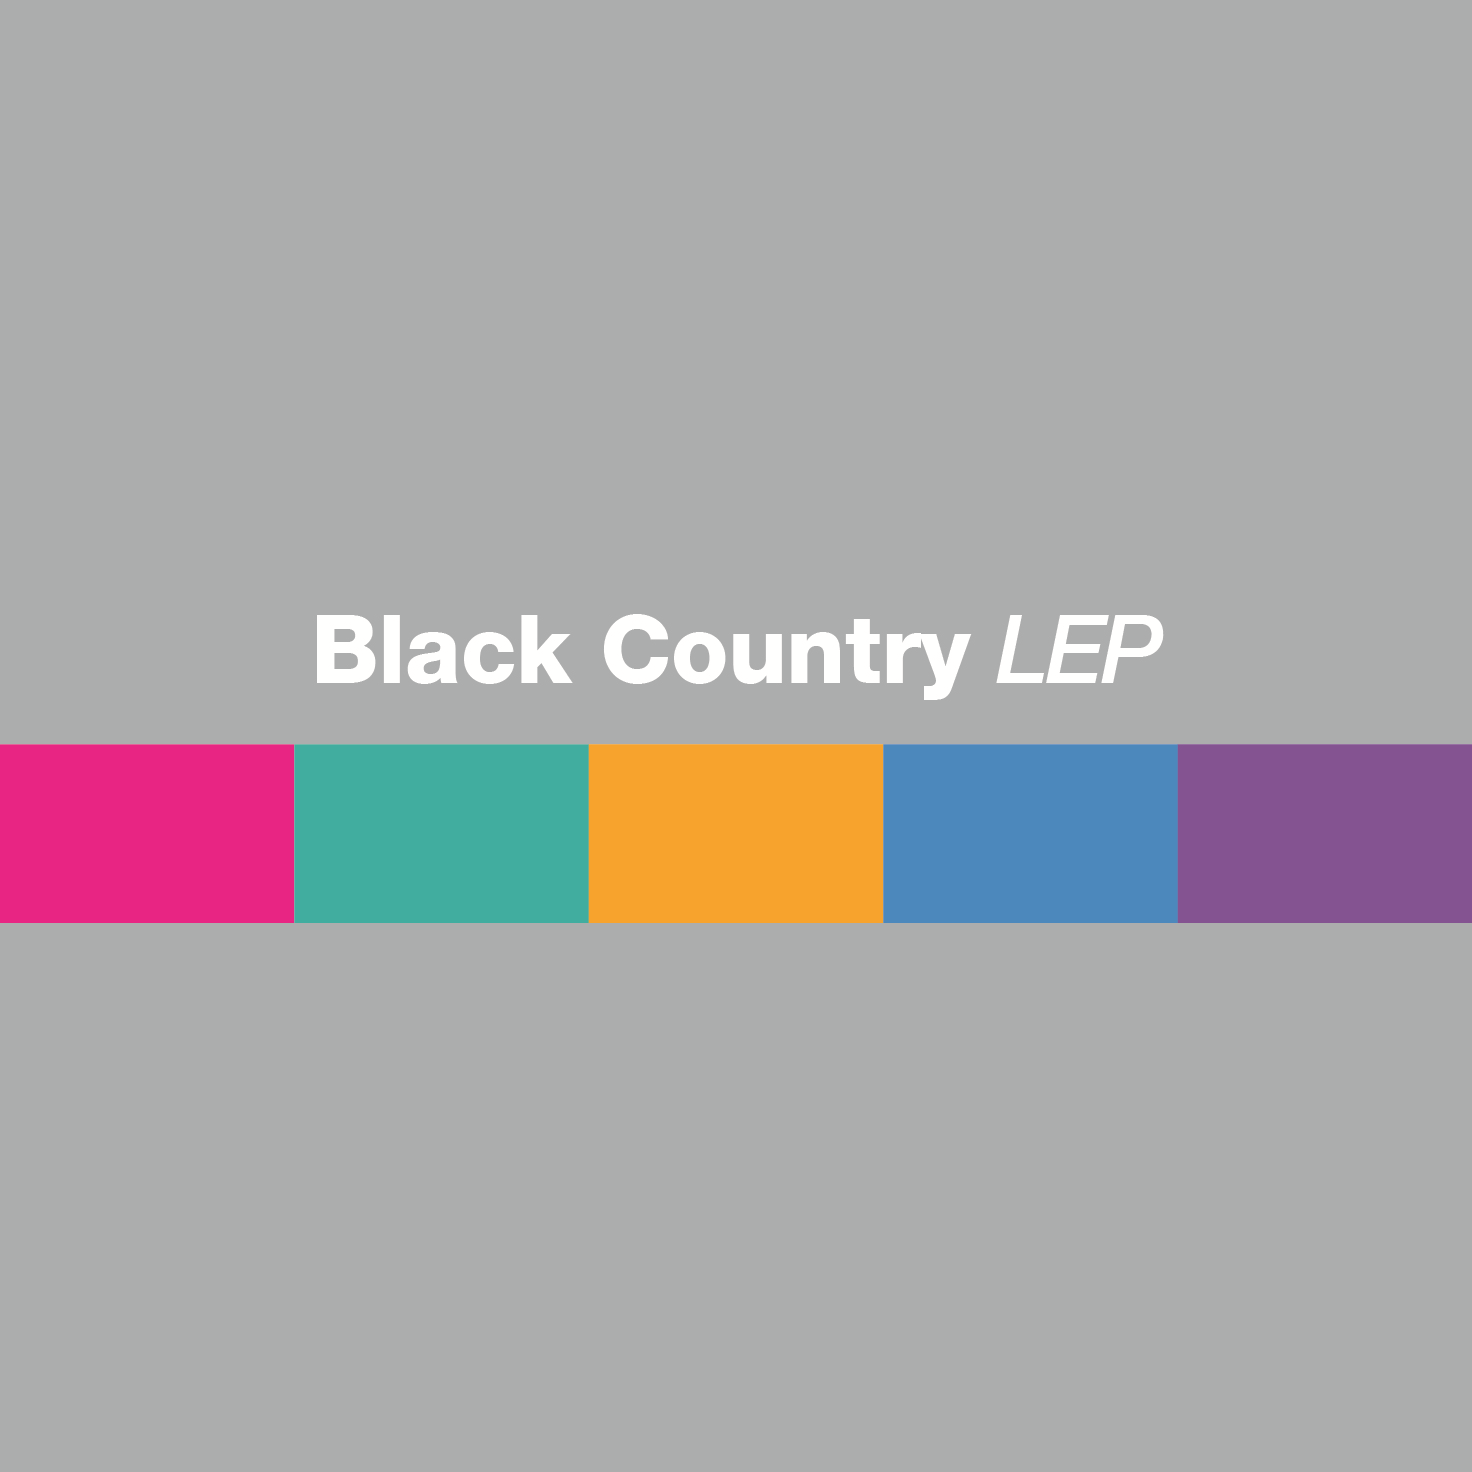 Discover Apprenticeships with Black Country LEP